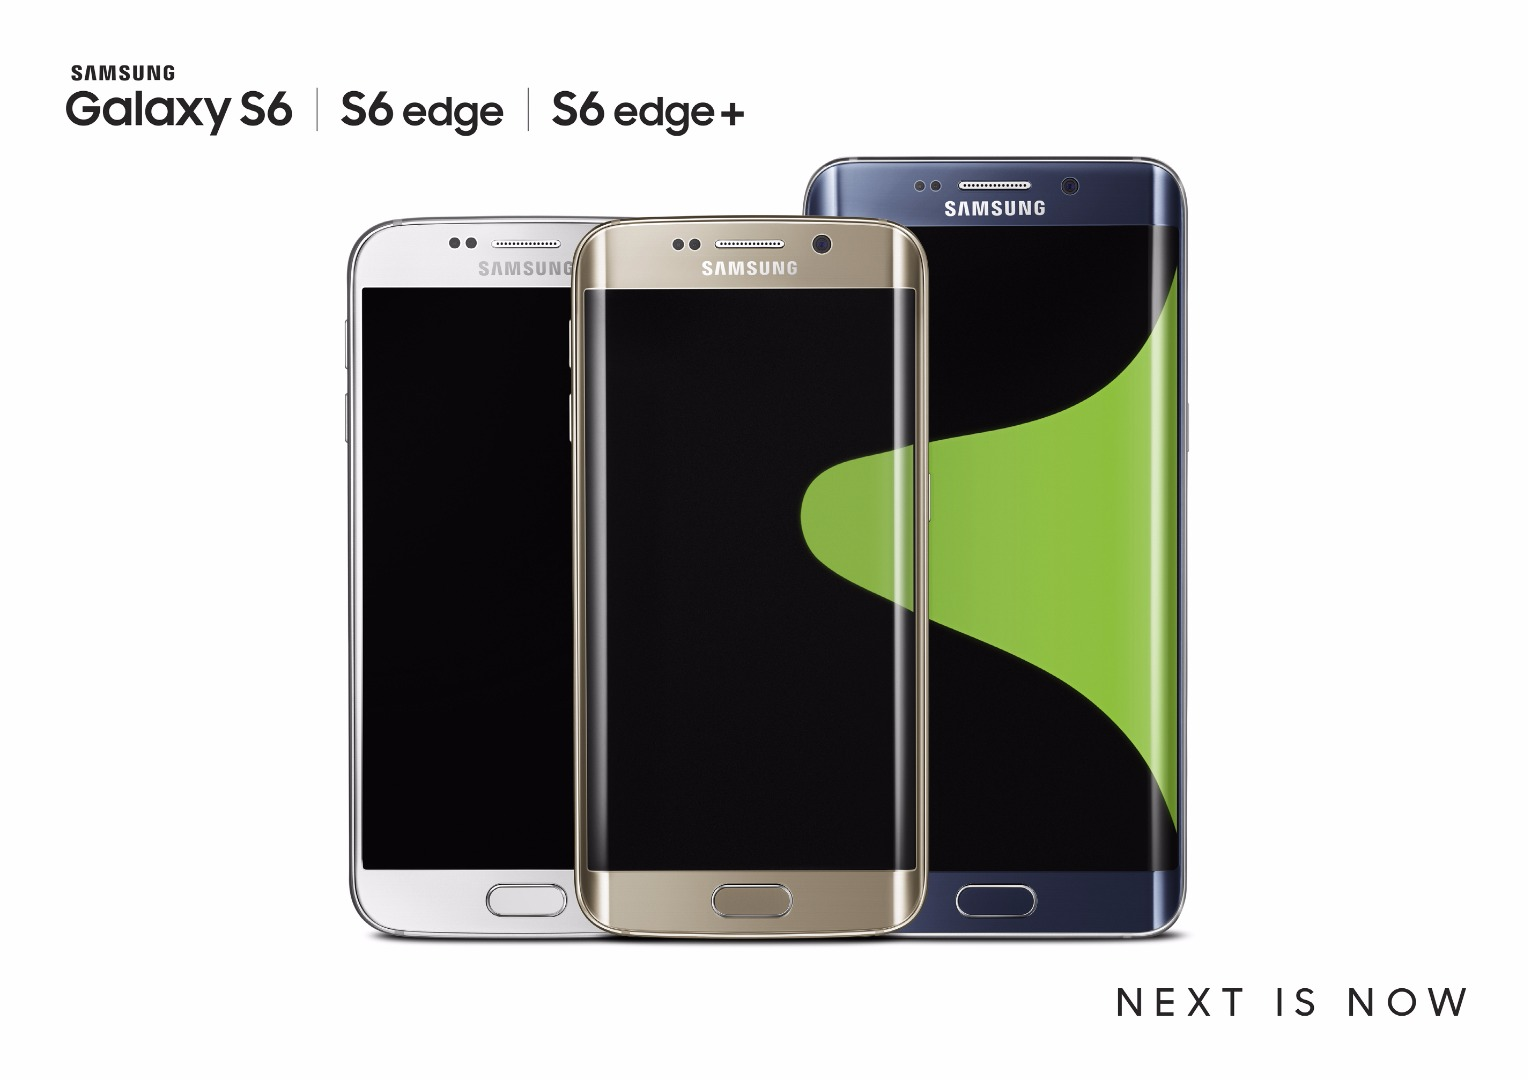 galaxy-s6-family-edge-and-edge-plus